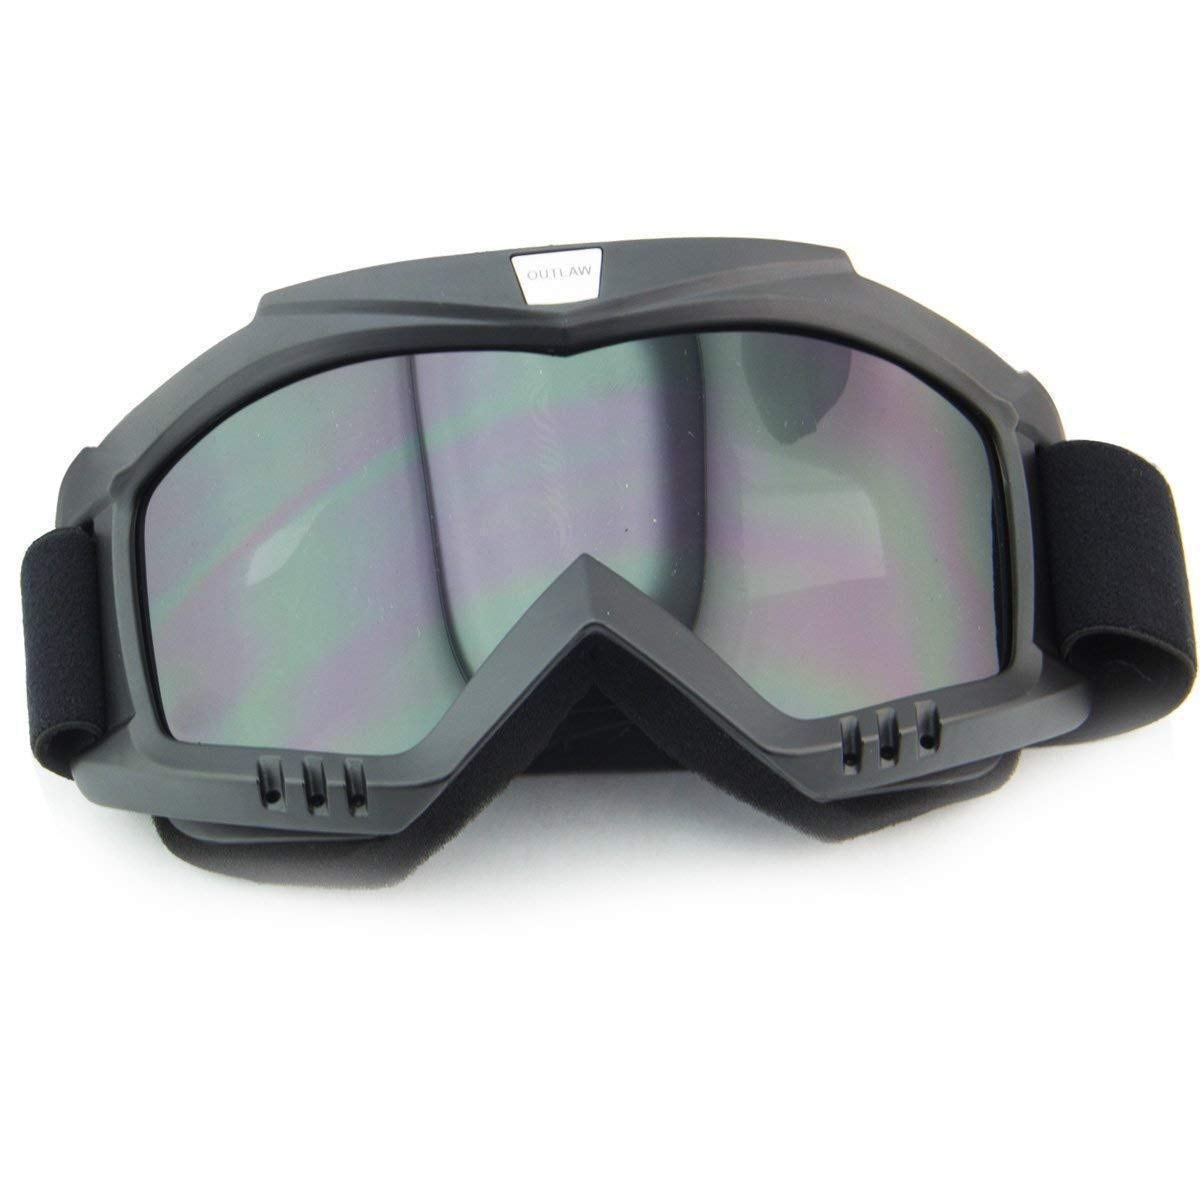 Outlaw 50 Nemesis Vintage Face Mask with Detachable Motorcycle Goggles and UV 4 One Size Outlaw Helmets